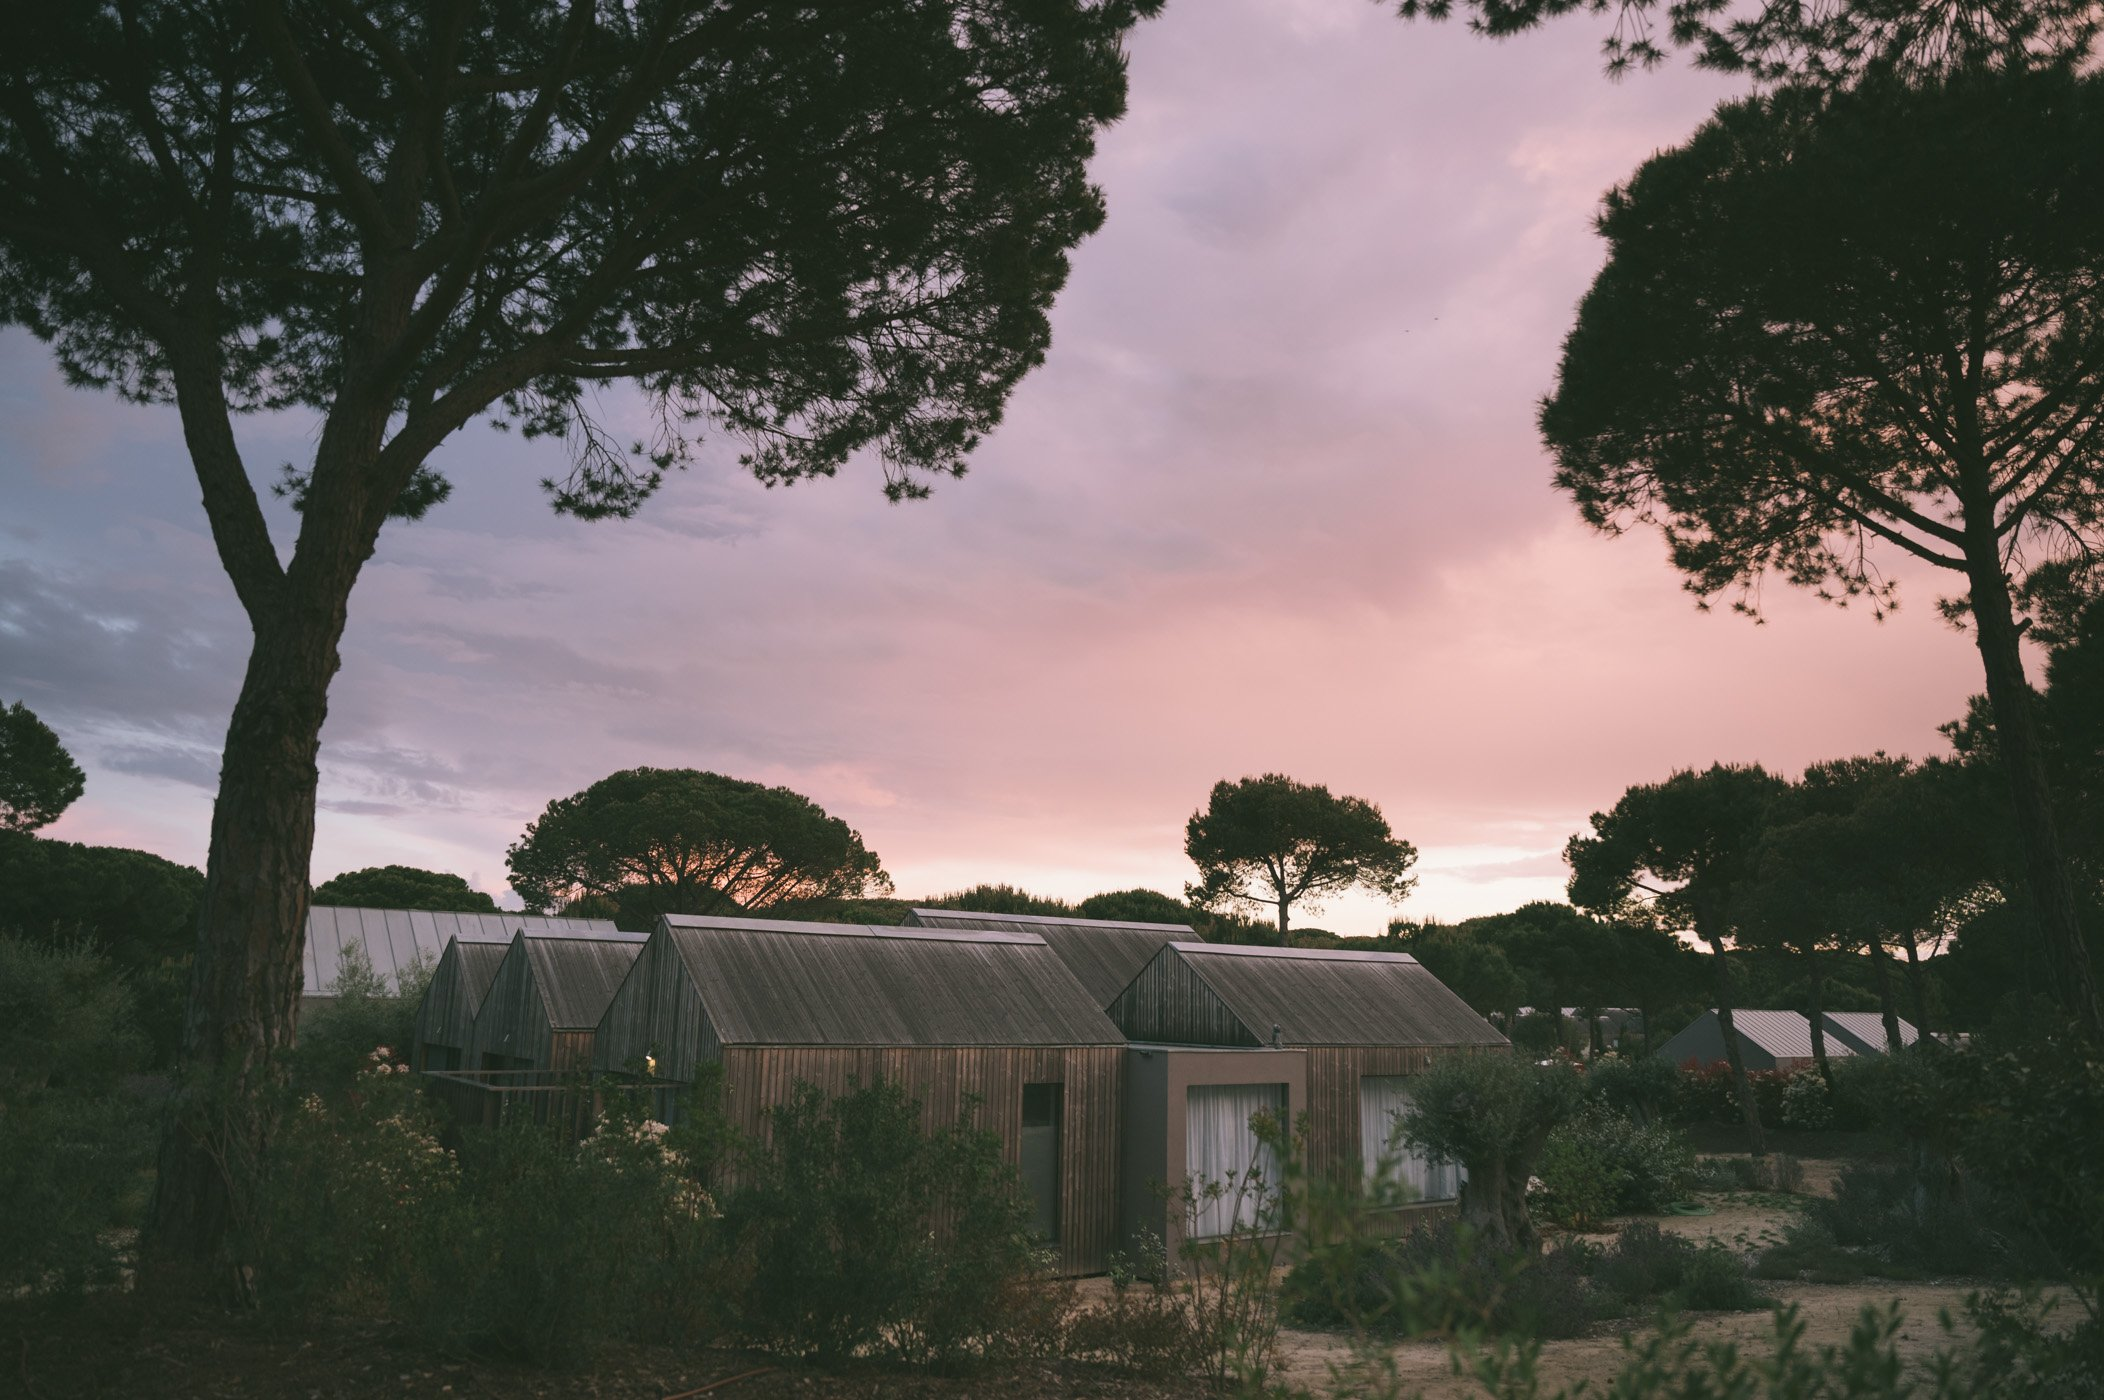 Sunset coolers the sky pink at Sublime Comporta